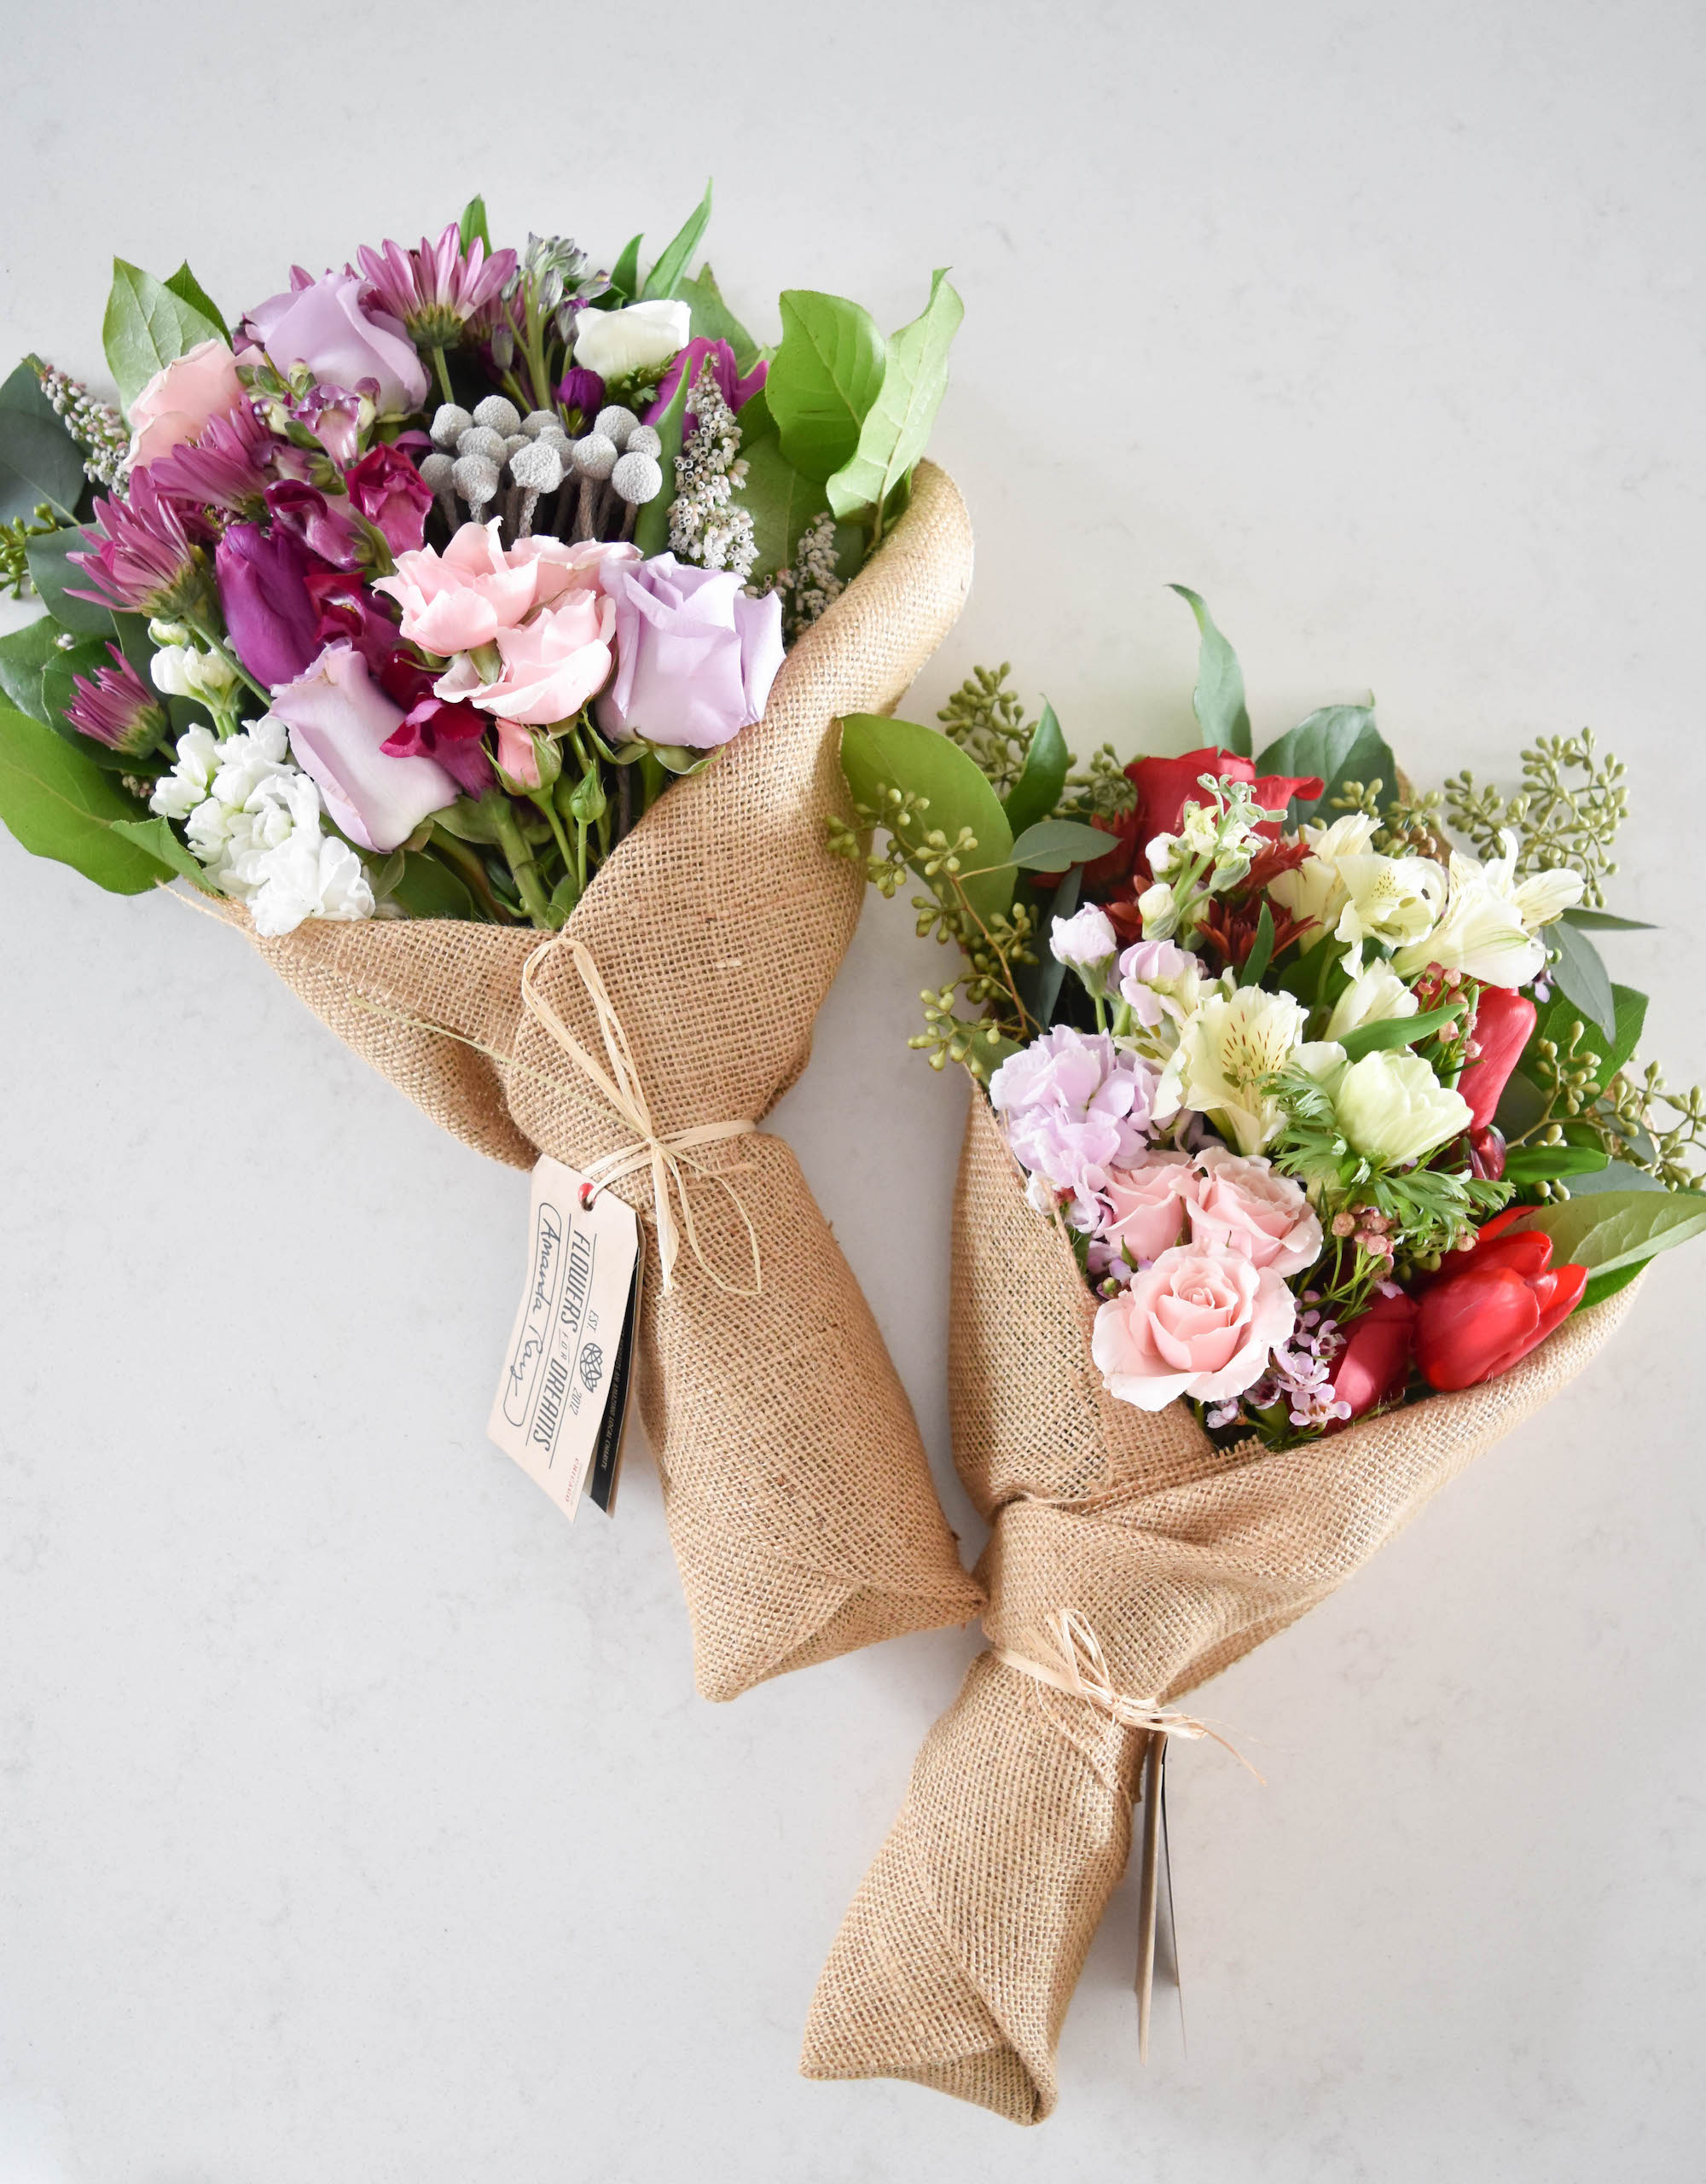 best flowers for mother's day, best flowers gift, roses that last a year, flower in a box, chicago mom best gifts, jennifer worman home, living room inspiration, home decor flowers, flowers for dreams Chicago